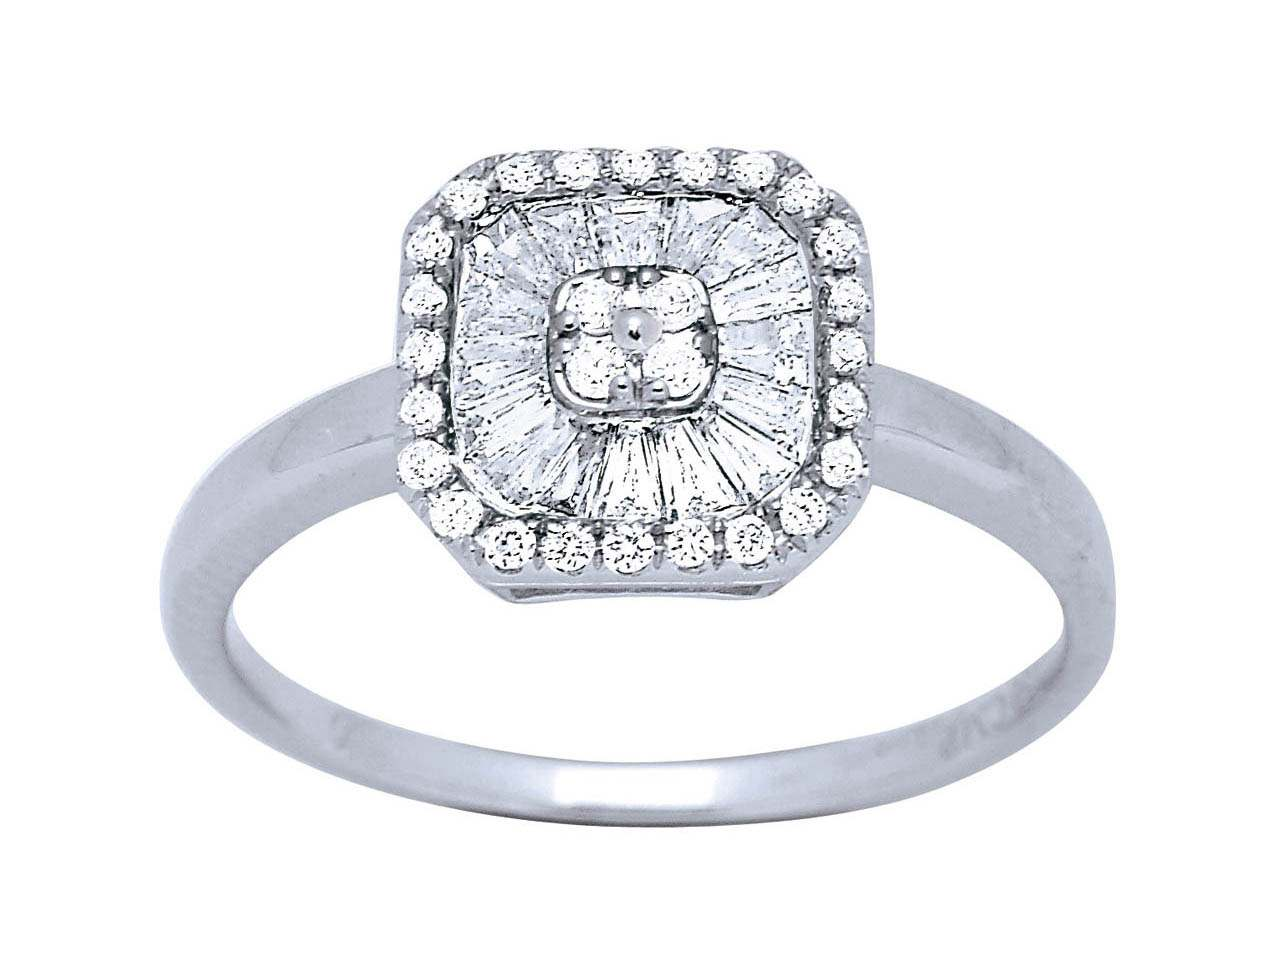 Bague carrée grand modèle, Or gris, diamants 0,448 ct